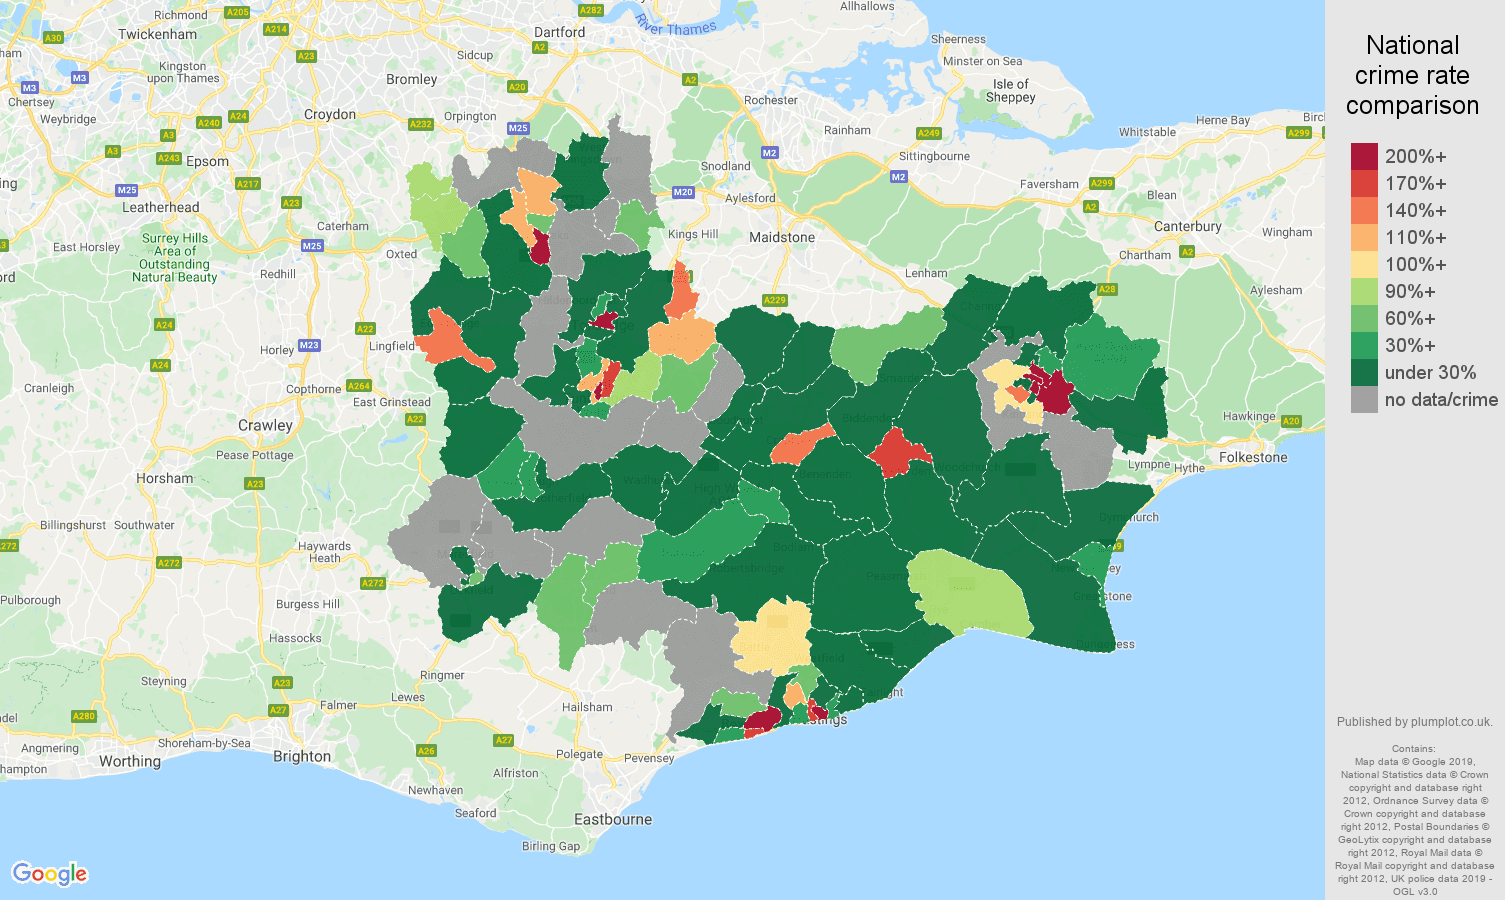 Tonbridge shoplifting crime rate comparison map